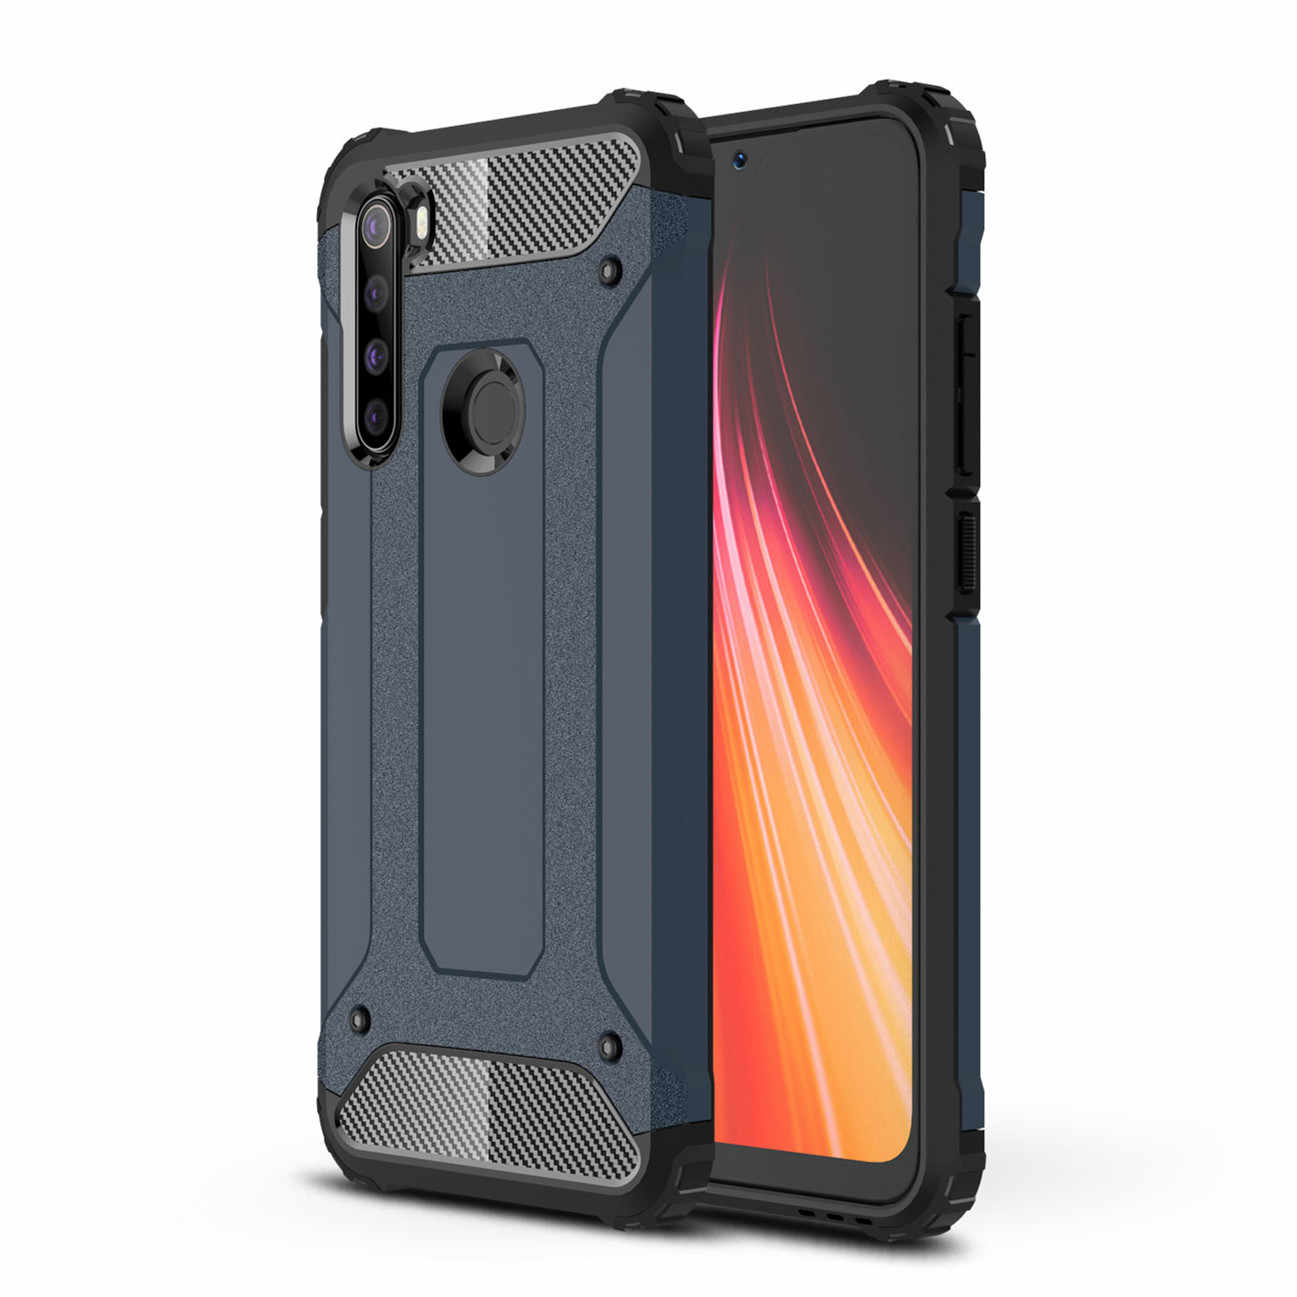 For Redmi Note 8 Case Luxury Rugged Hybrid Armor Case For Xiaomi Redmi Note 8 Pro Cover Shockproof Accessories Xs0502 Phone Case Covers Aliexpress